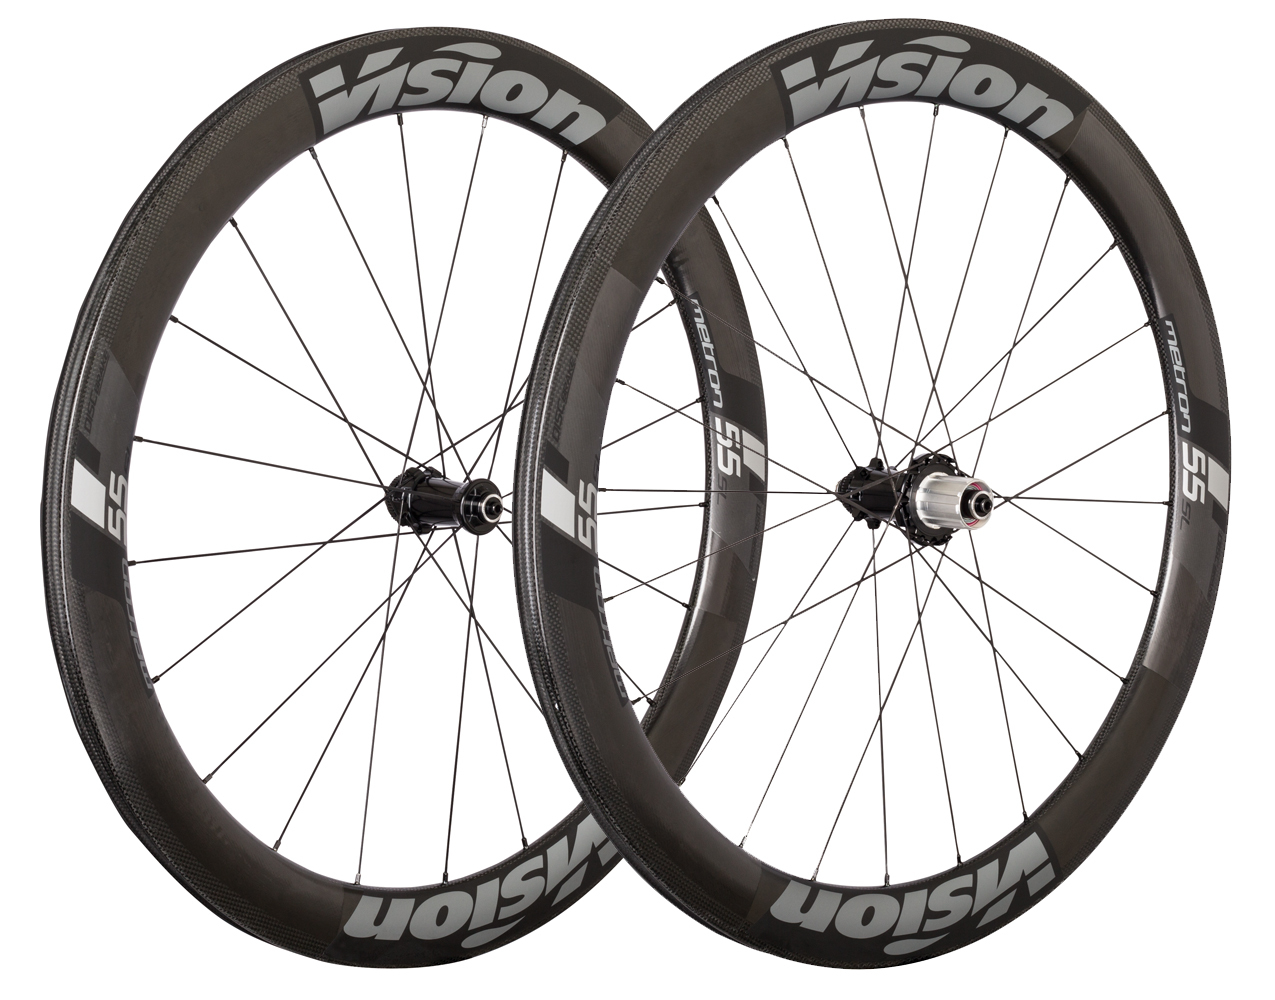 Vision Metron 55 Aero bike wheels